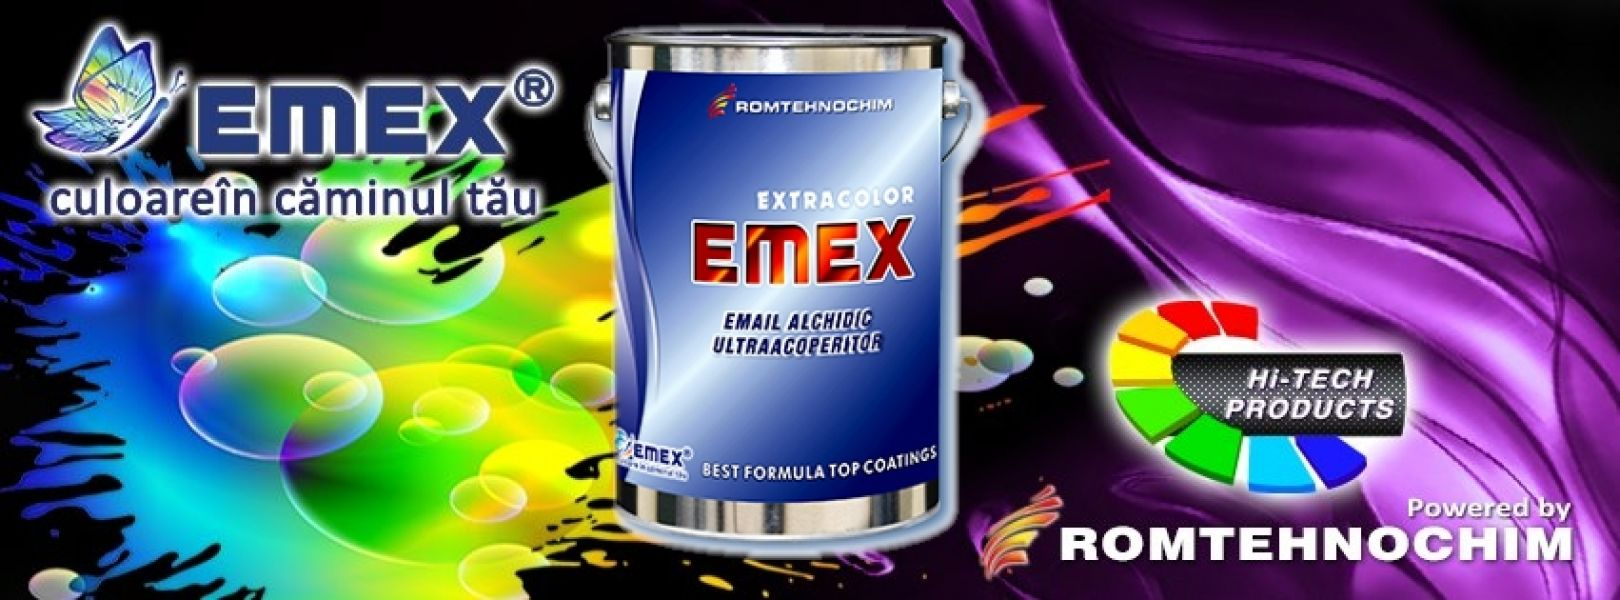 Email Alchidic EMEX EXTRACOLOR - 11,40 Ron/Kg - Gri